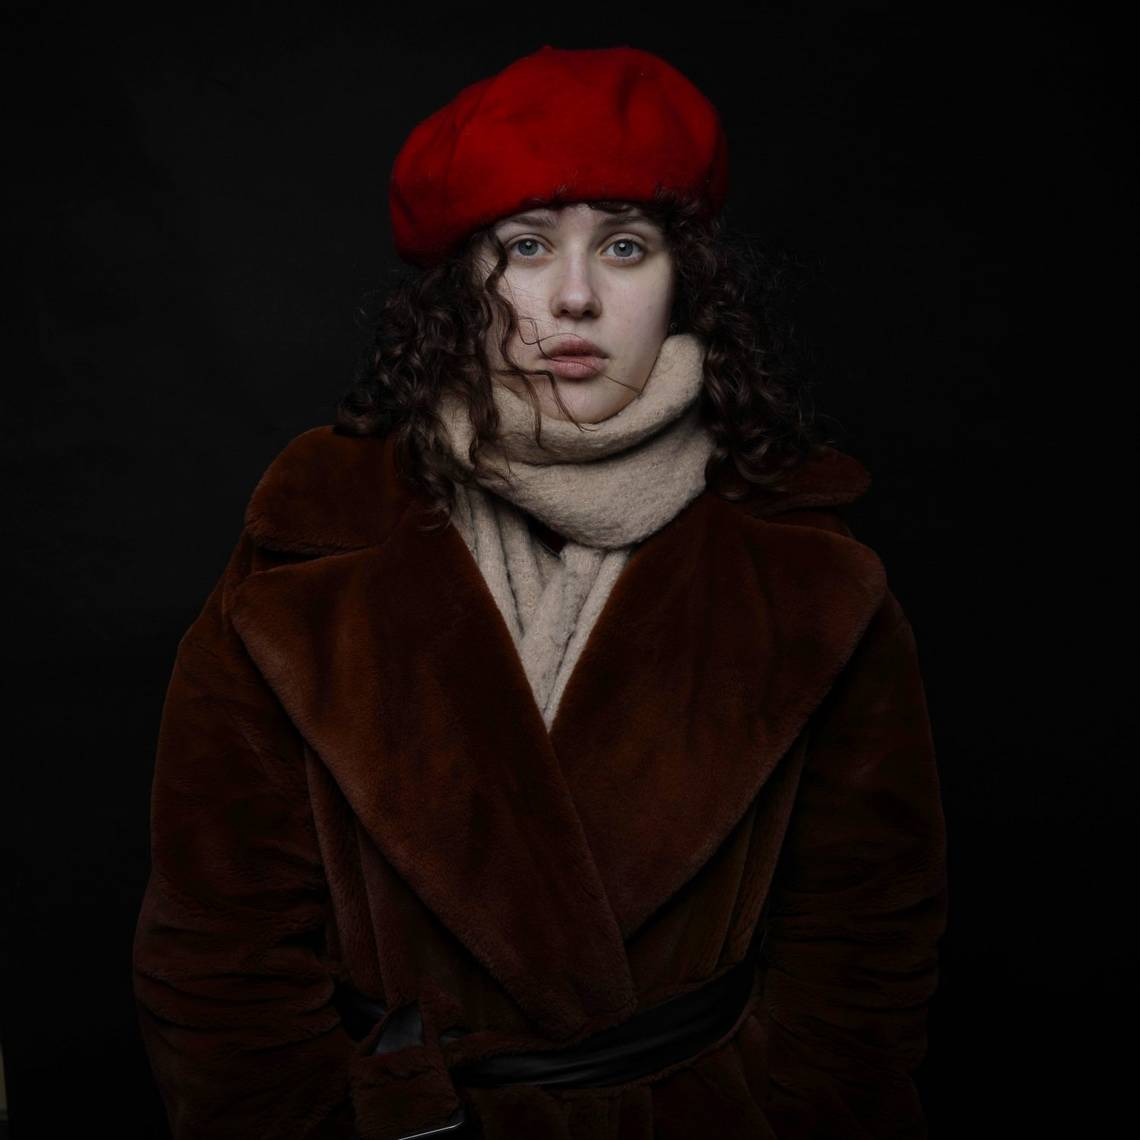 A woman stands against a black background wearing a winter coat and scarf, and a red beret. Taken by Canon Ambassador Piotr Małecki on a Canon EOS 5D Mark IV.